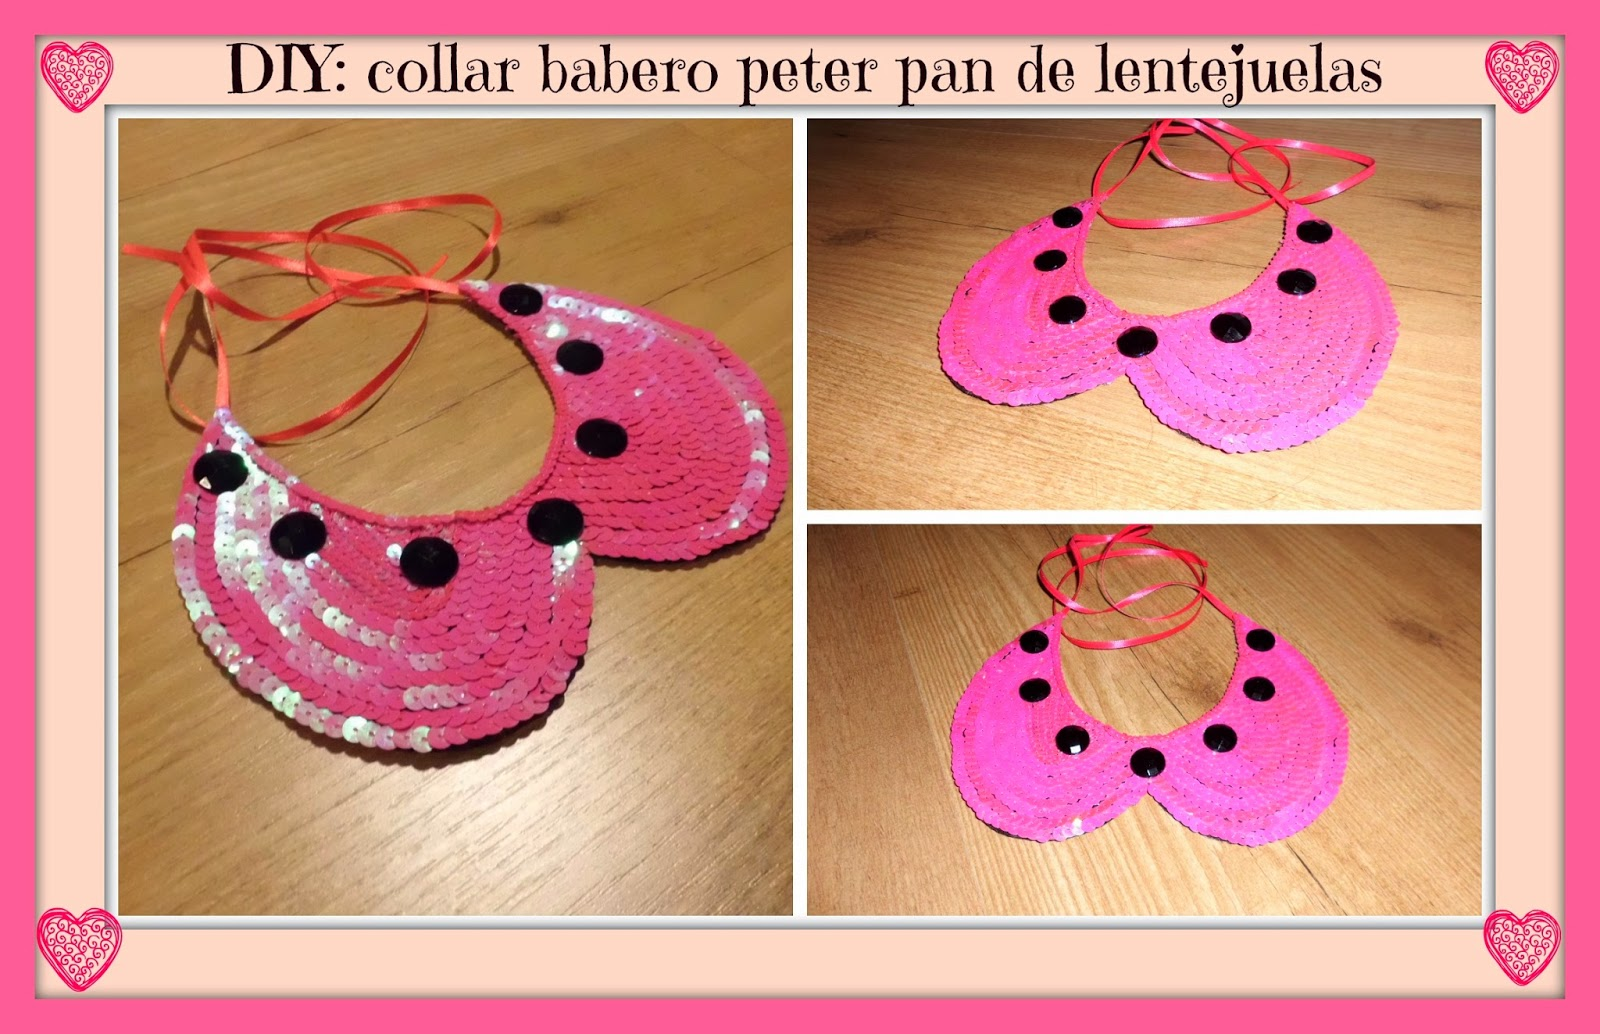 DIY :collar babero peter pan de lentejuelas / DIY bib necklace peter pan